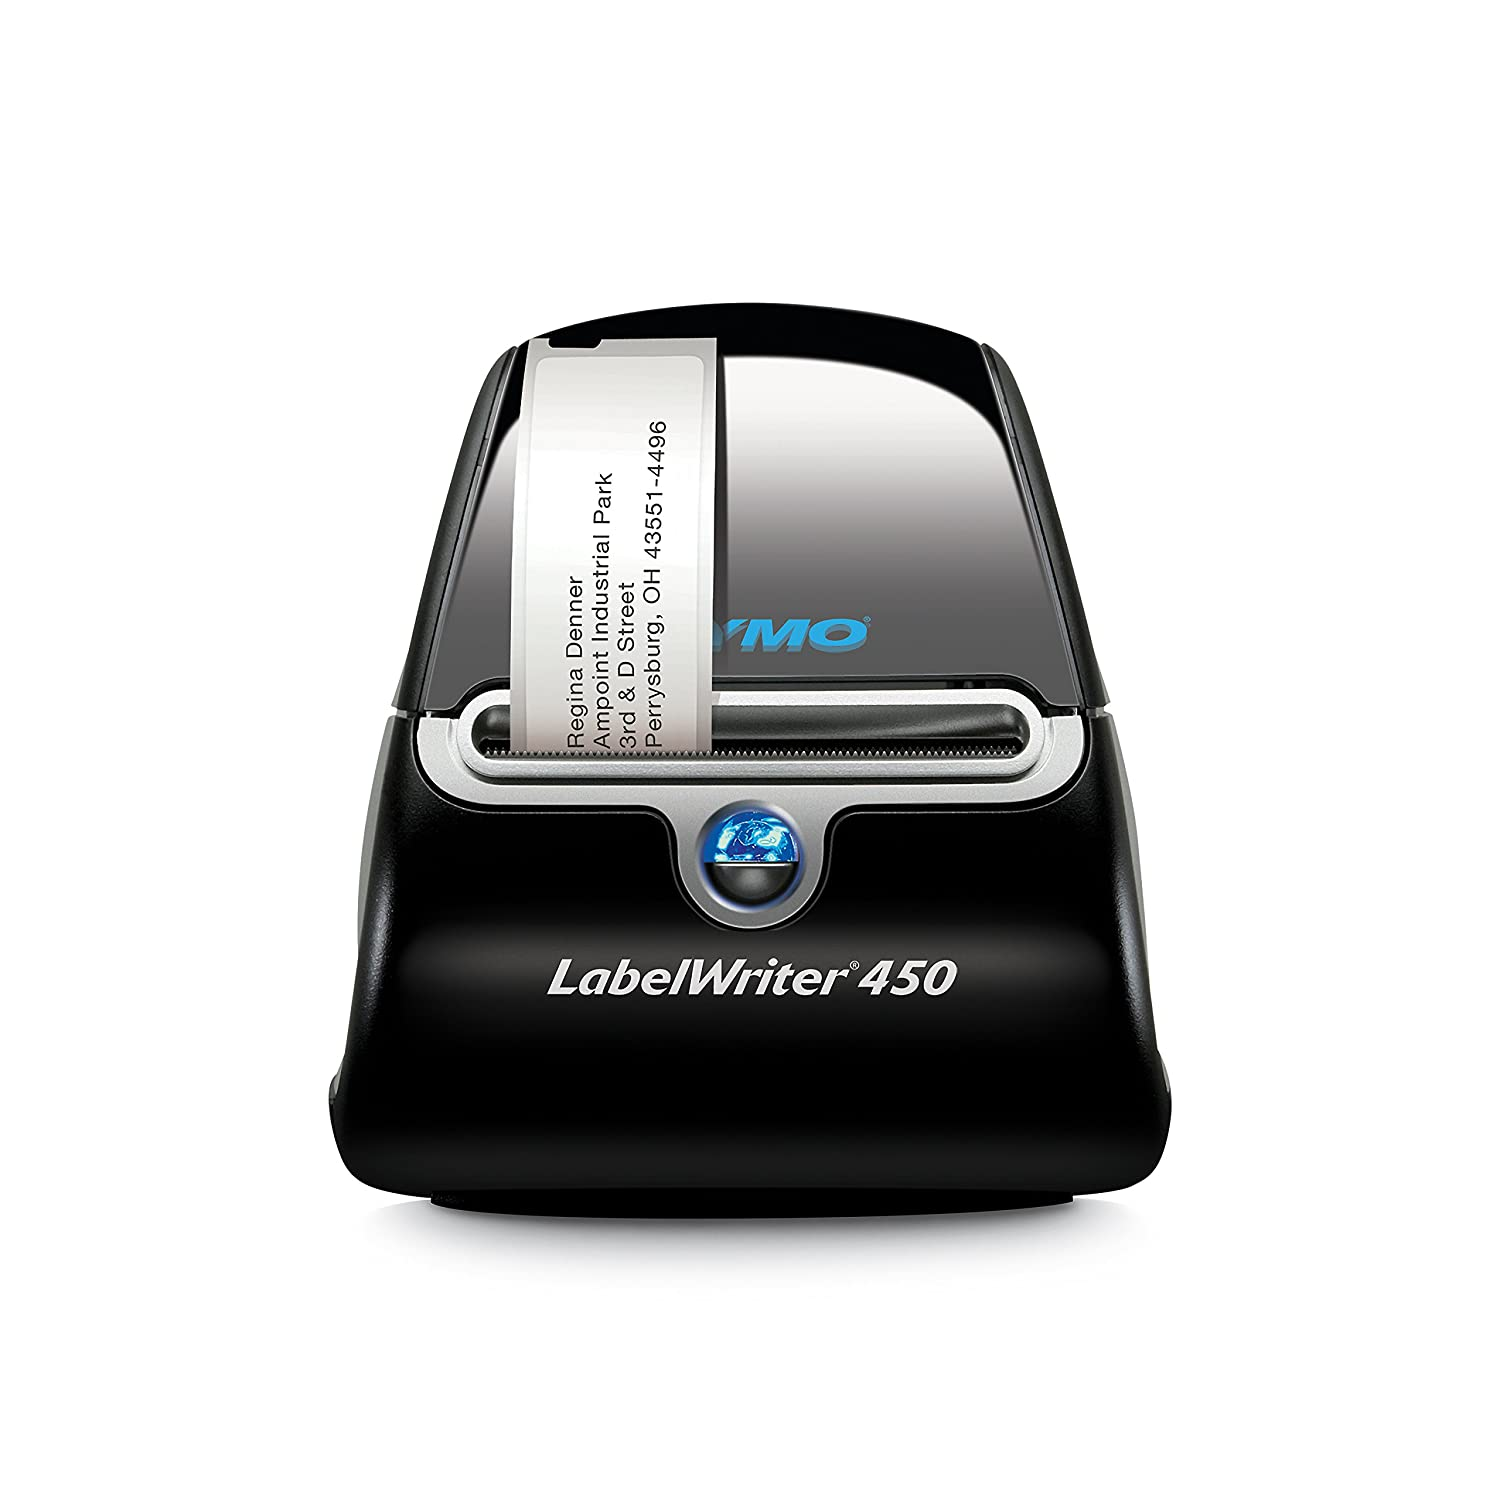 DYMO LabelWriter 450 Newell Rubbermaid V150275